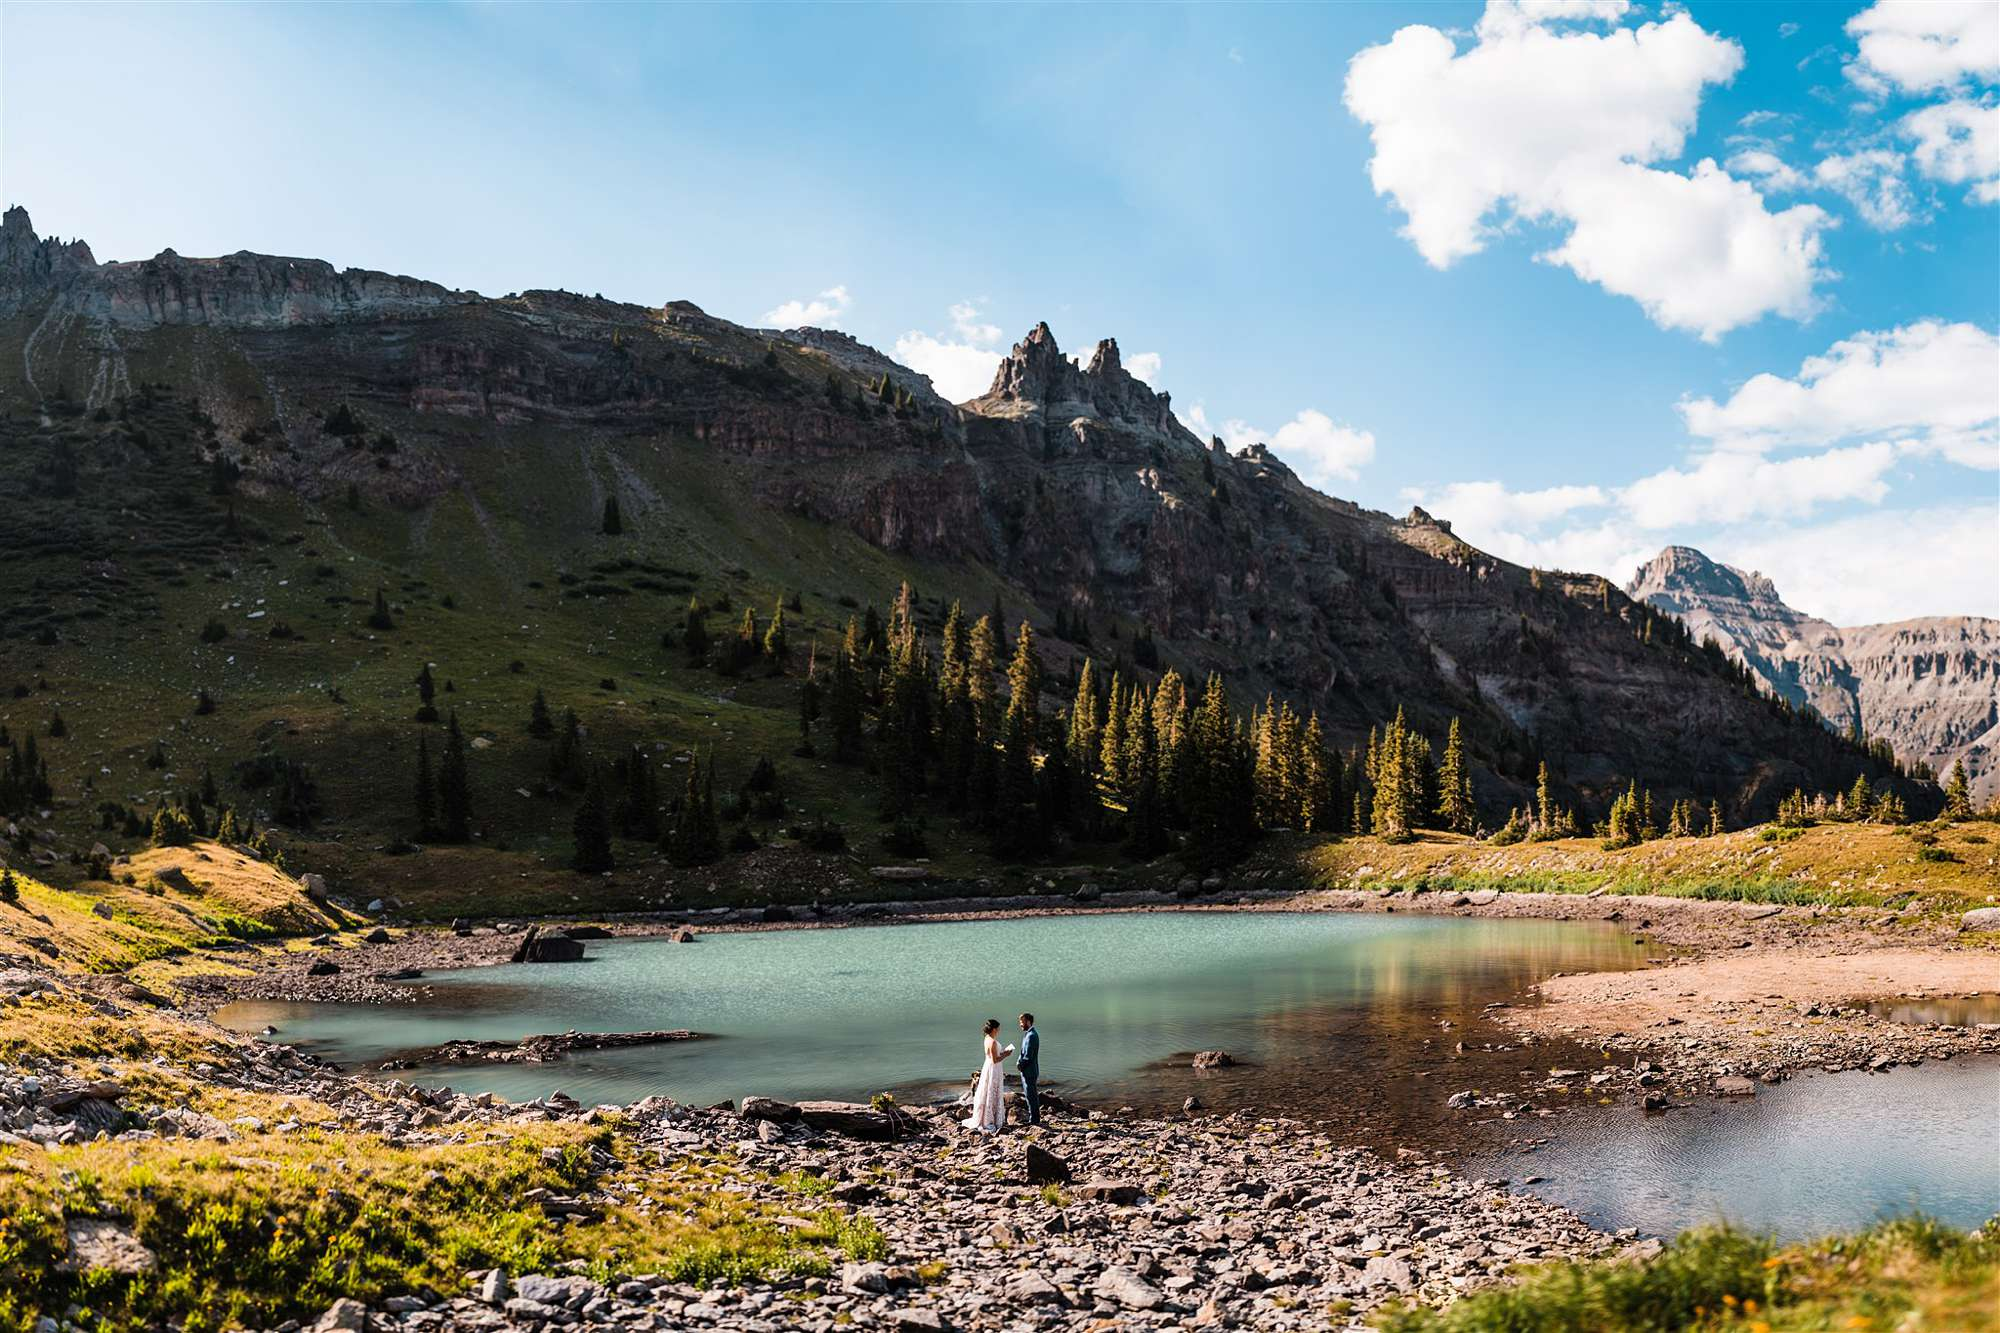 Elopement ceremony in mountains near Telluride